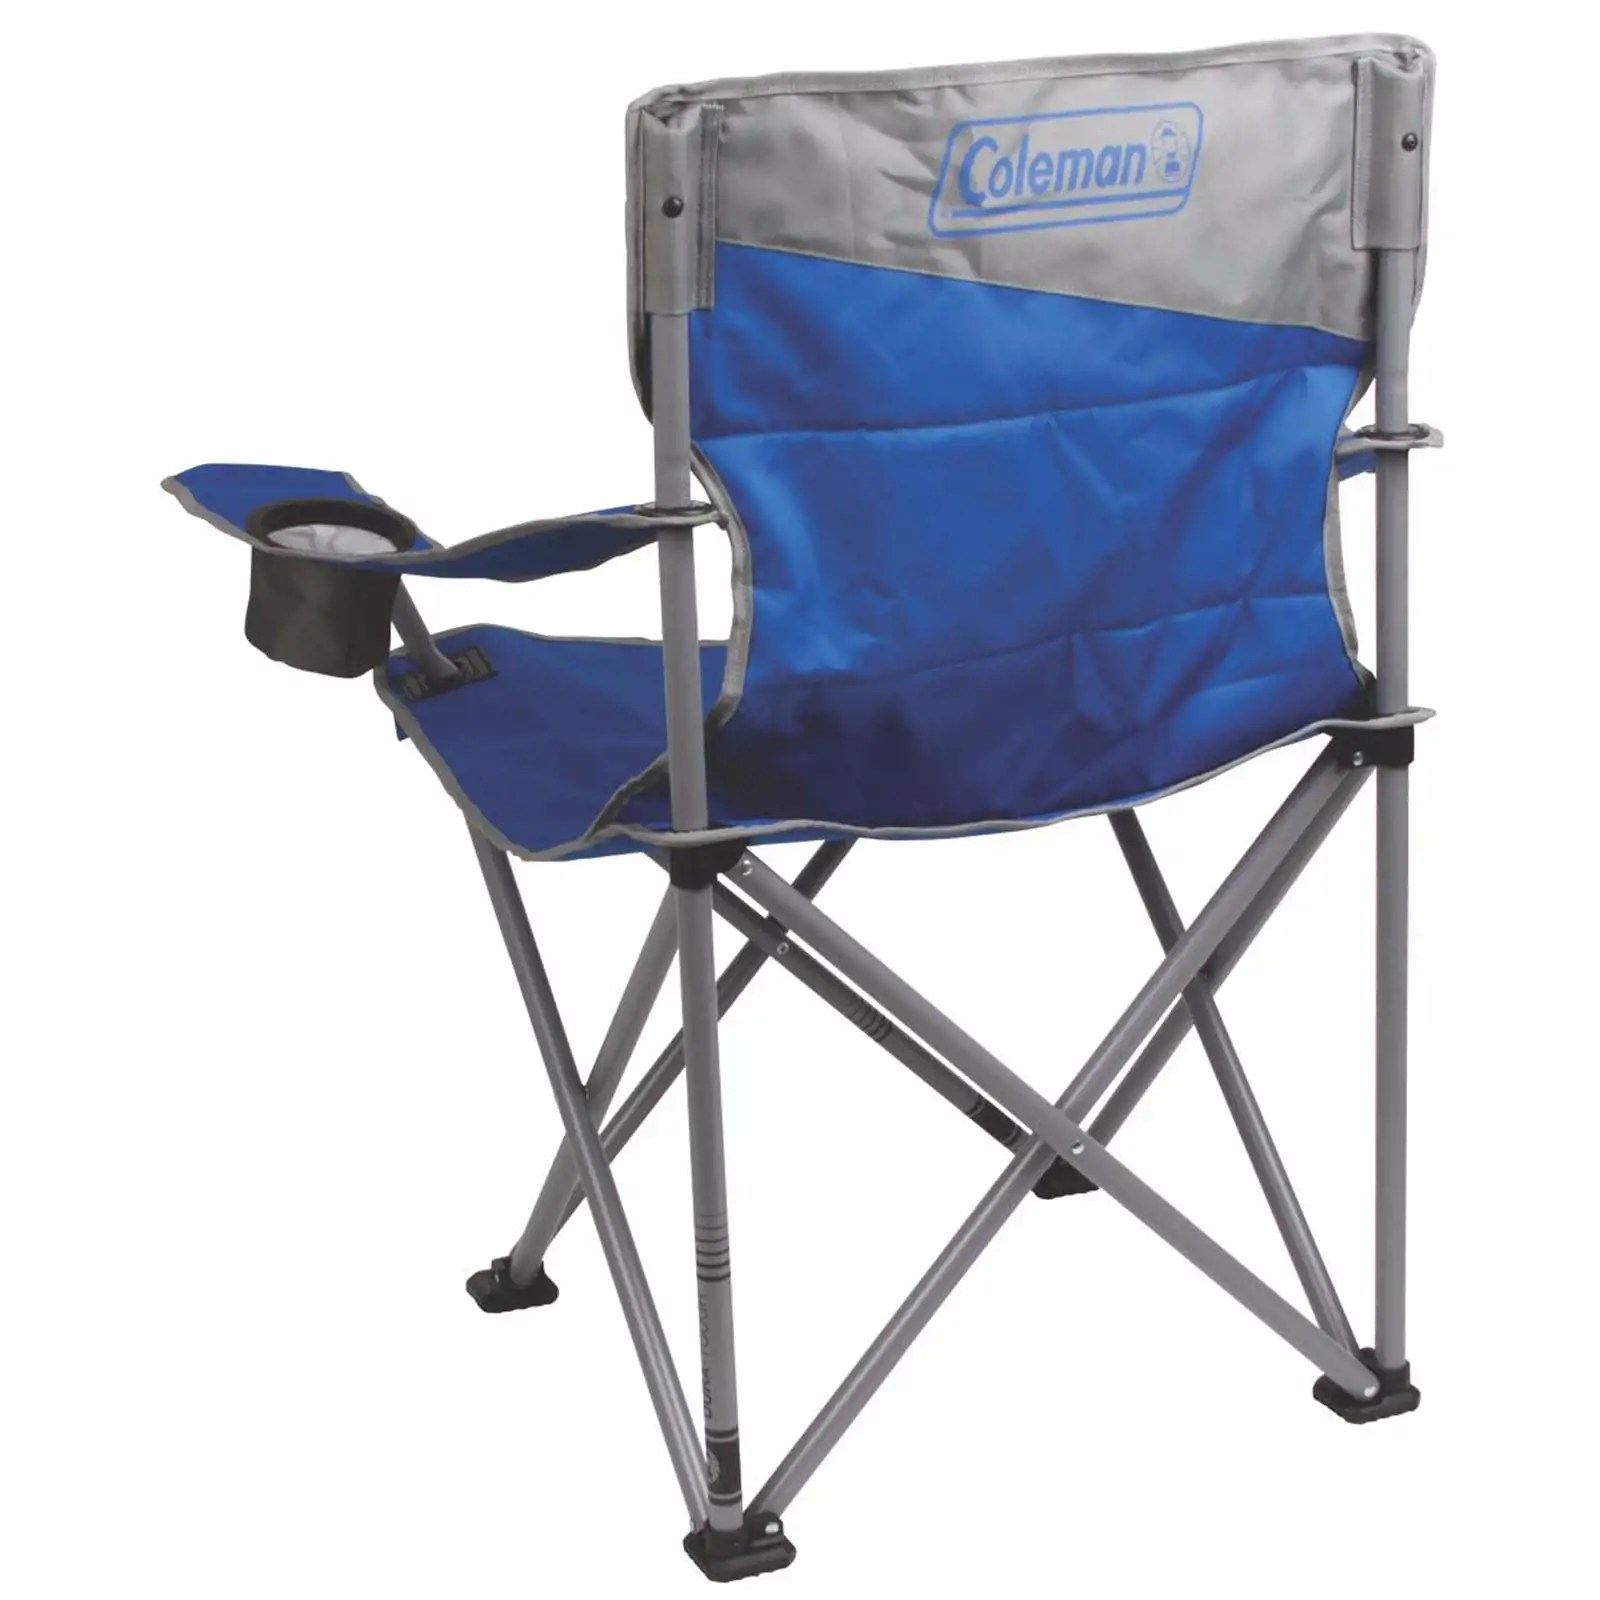 2 Coleman Camping Outdoor Beach Folding BigNTall